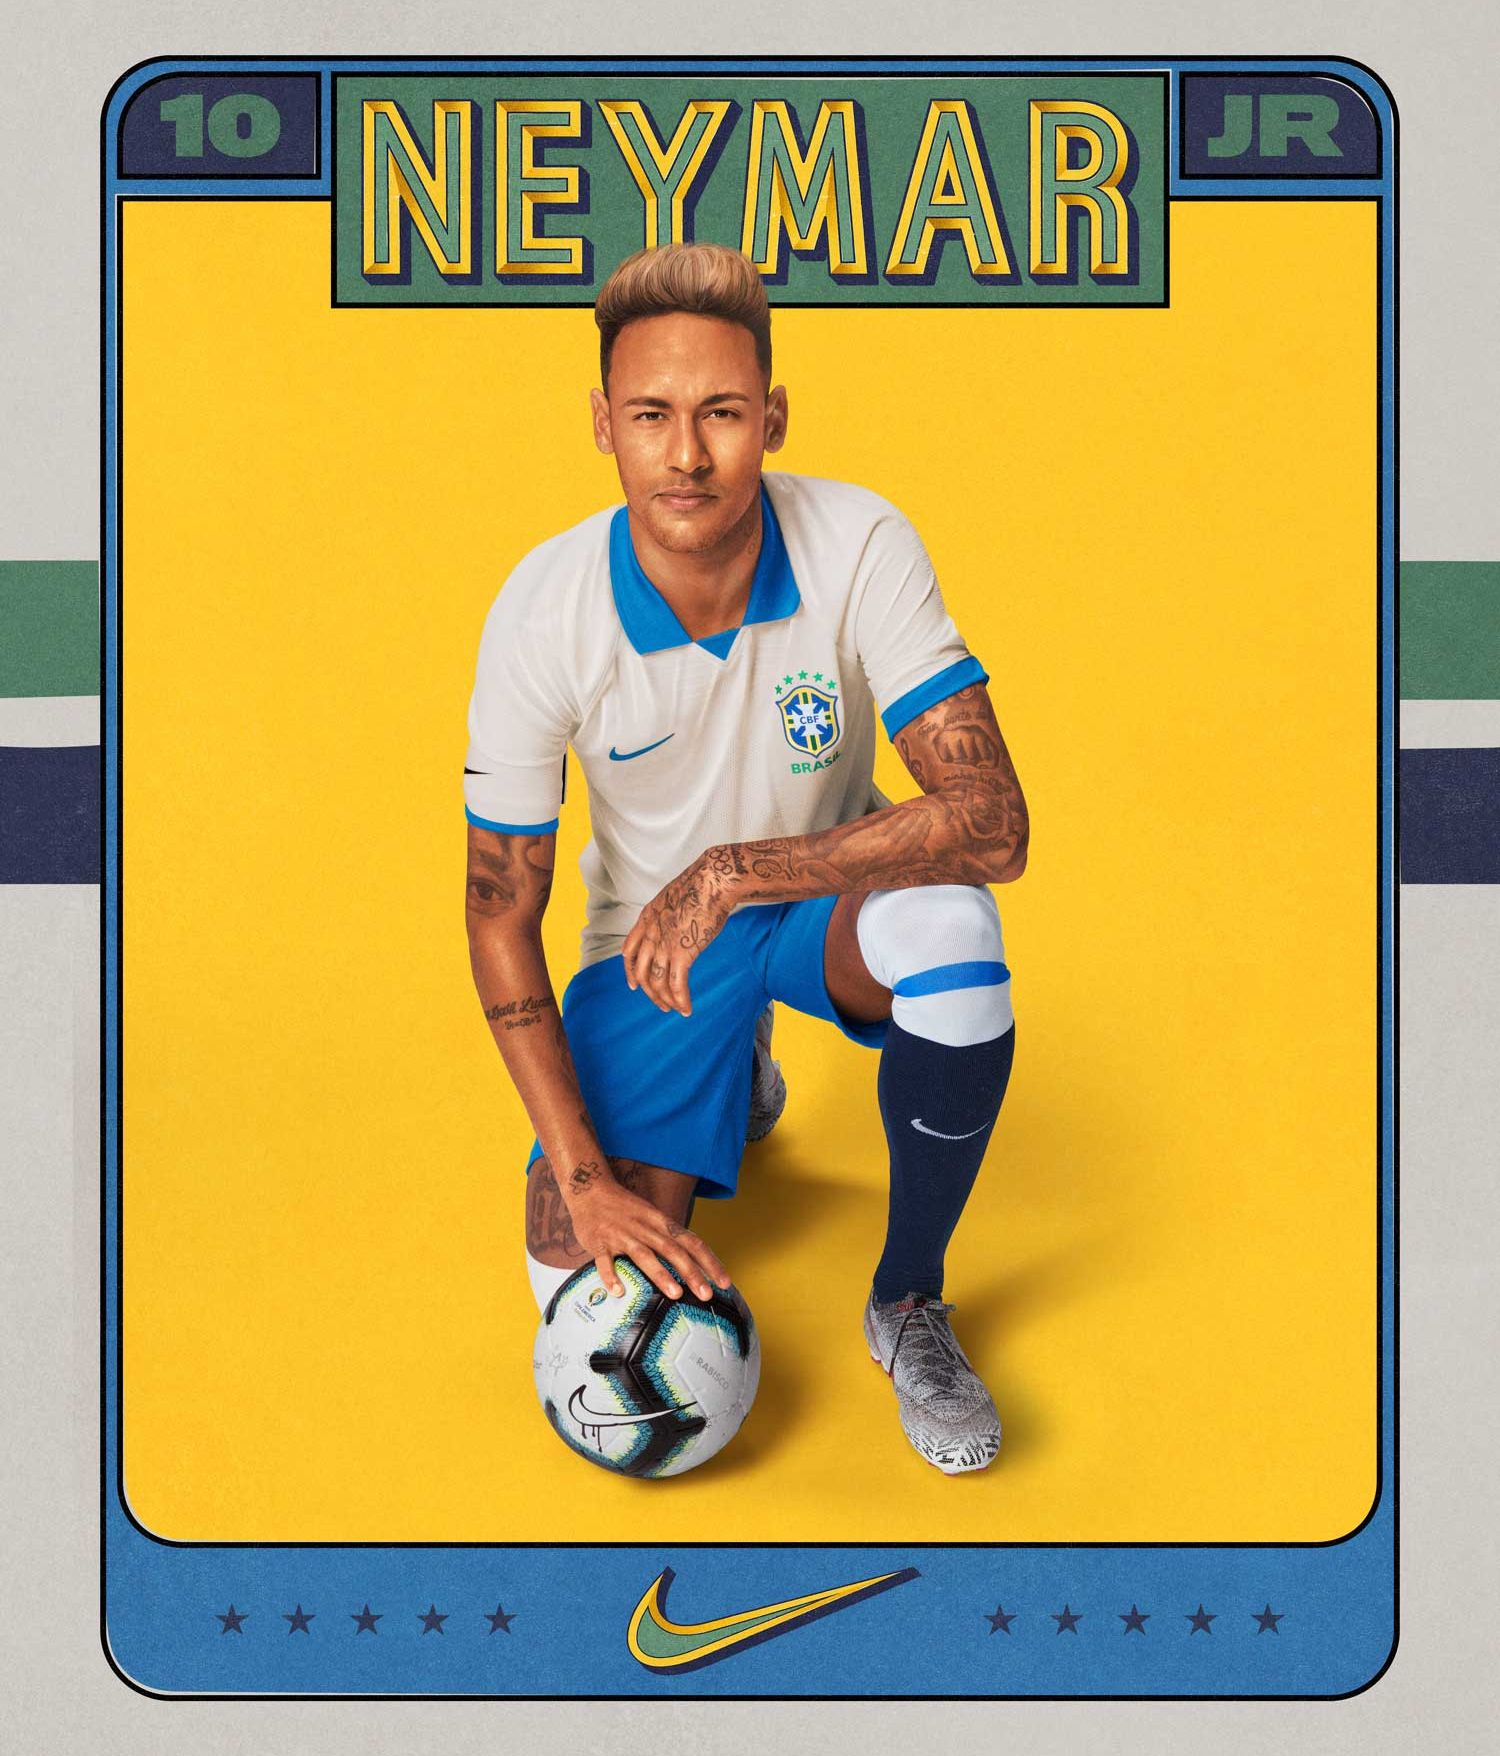 BODY ONLY Neymar Brasil novo uniforme 2019